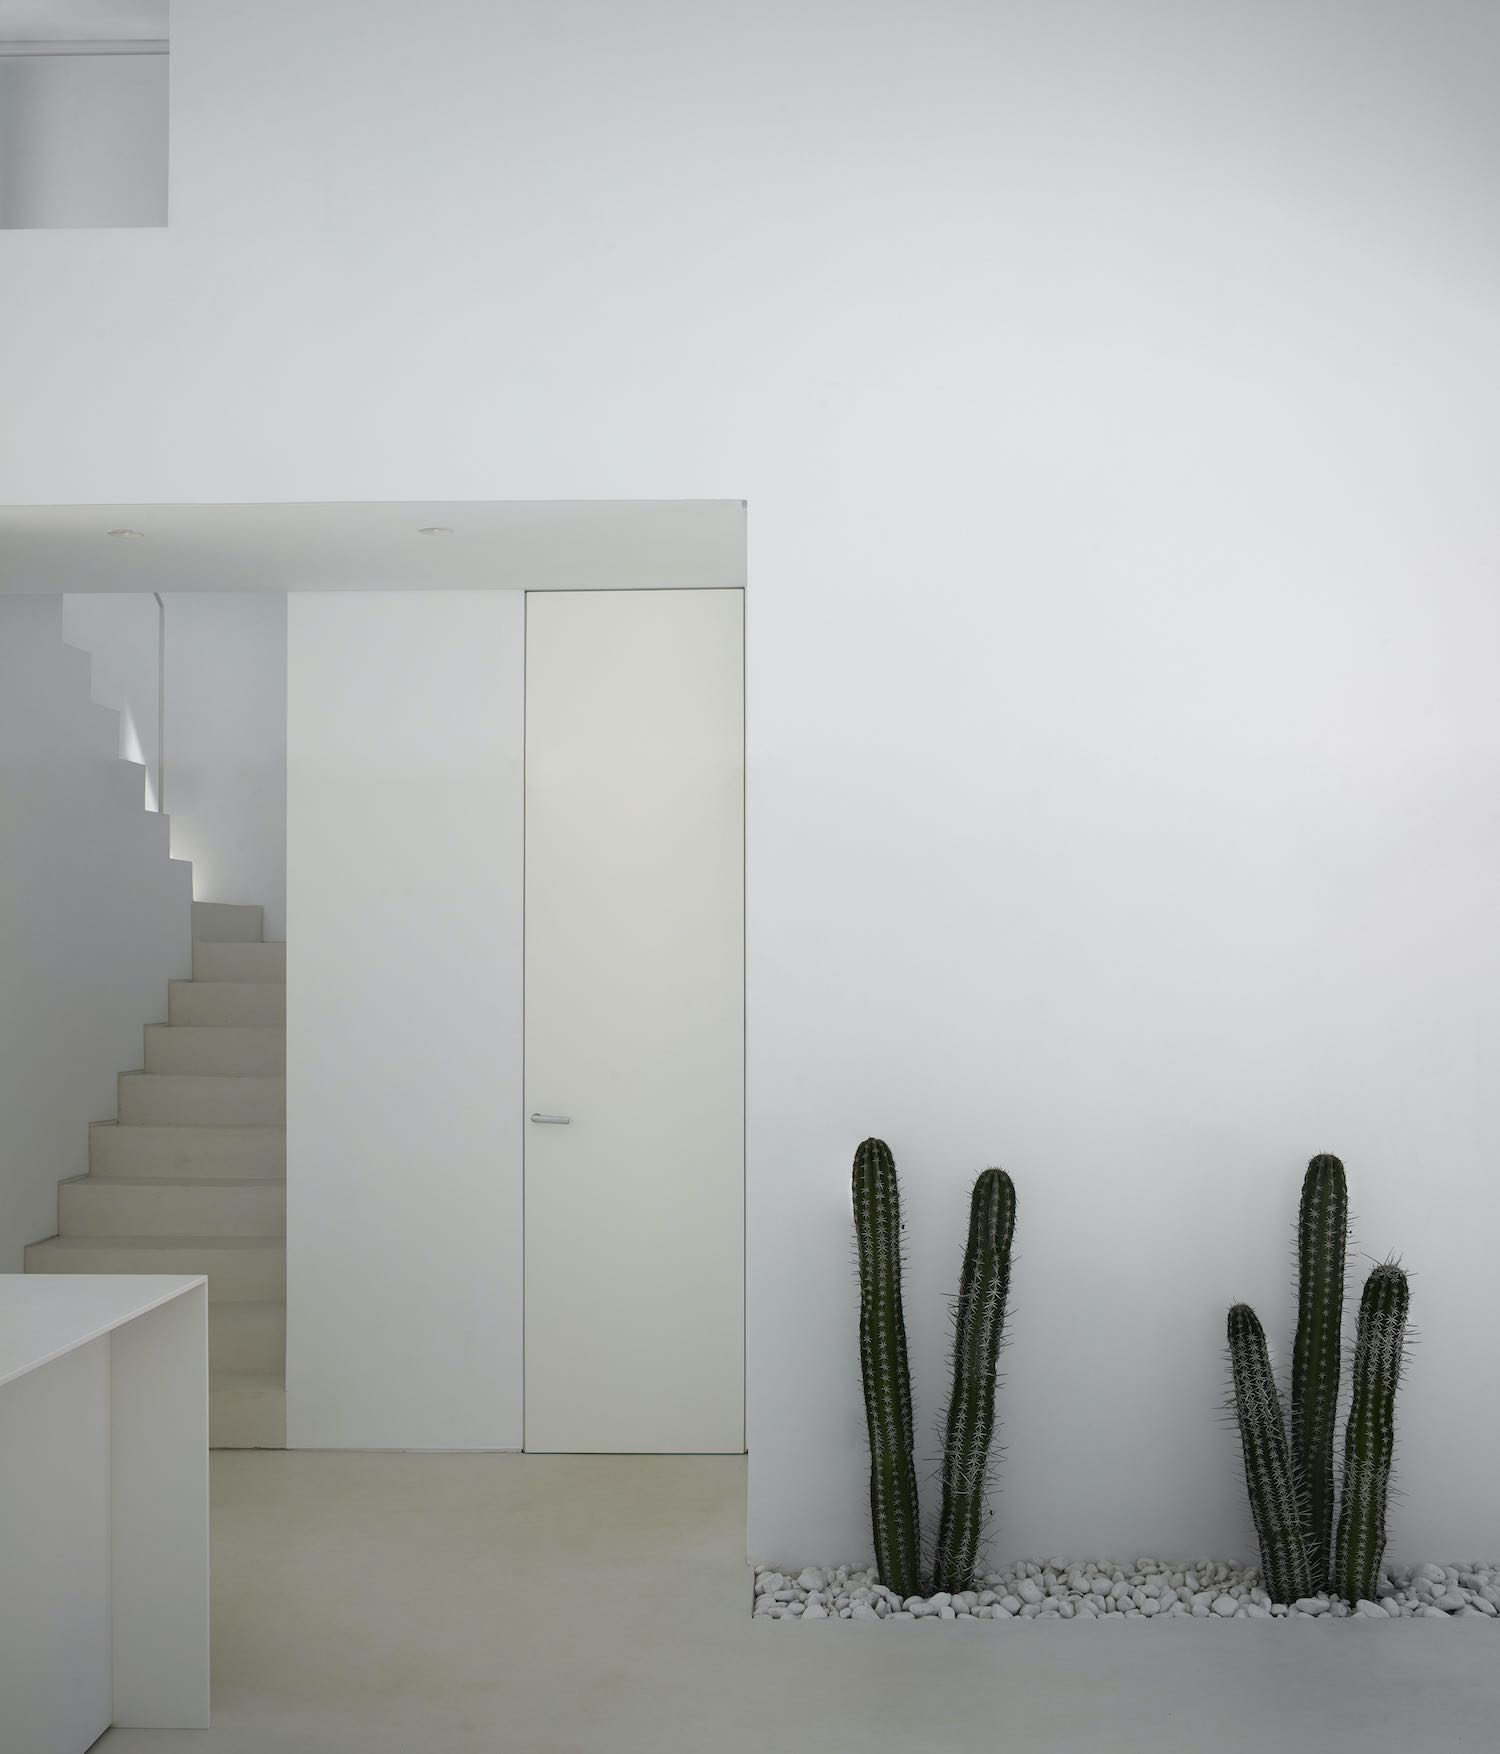 cactus inside the room